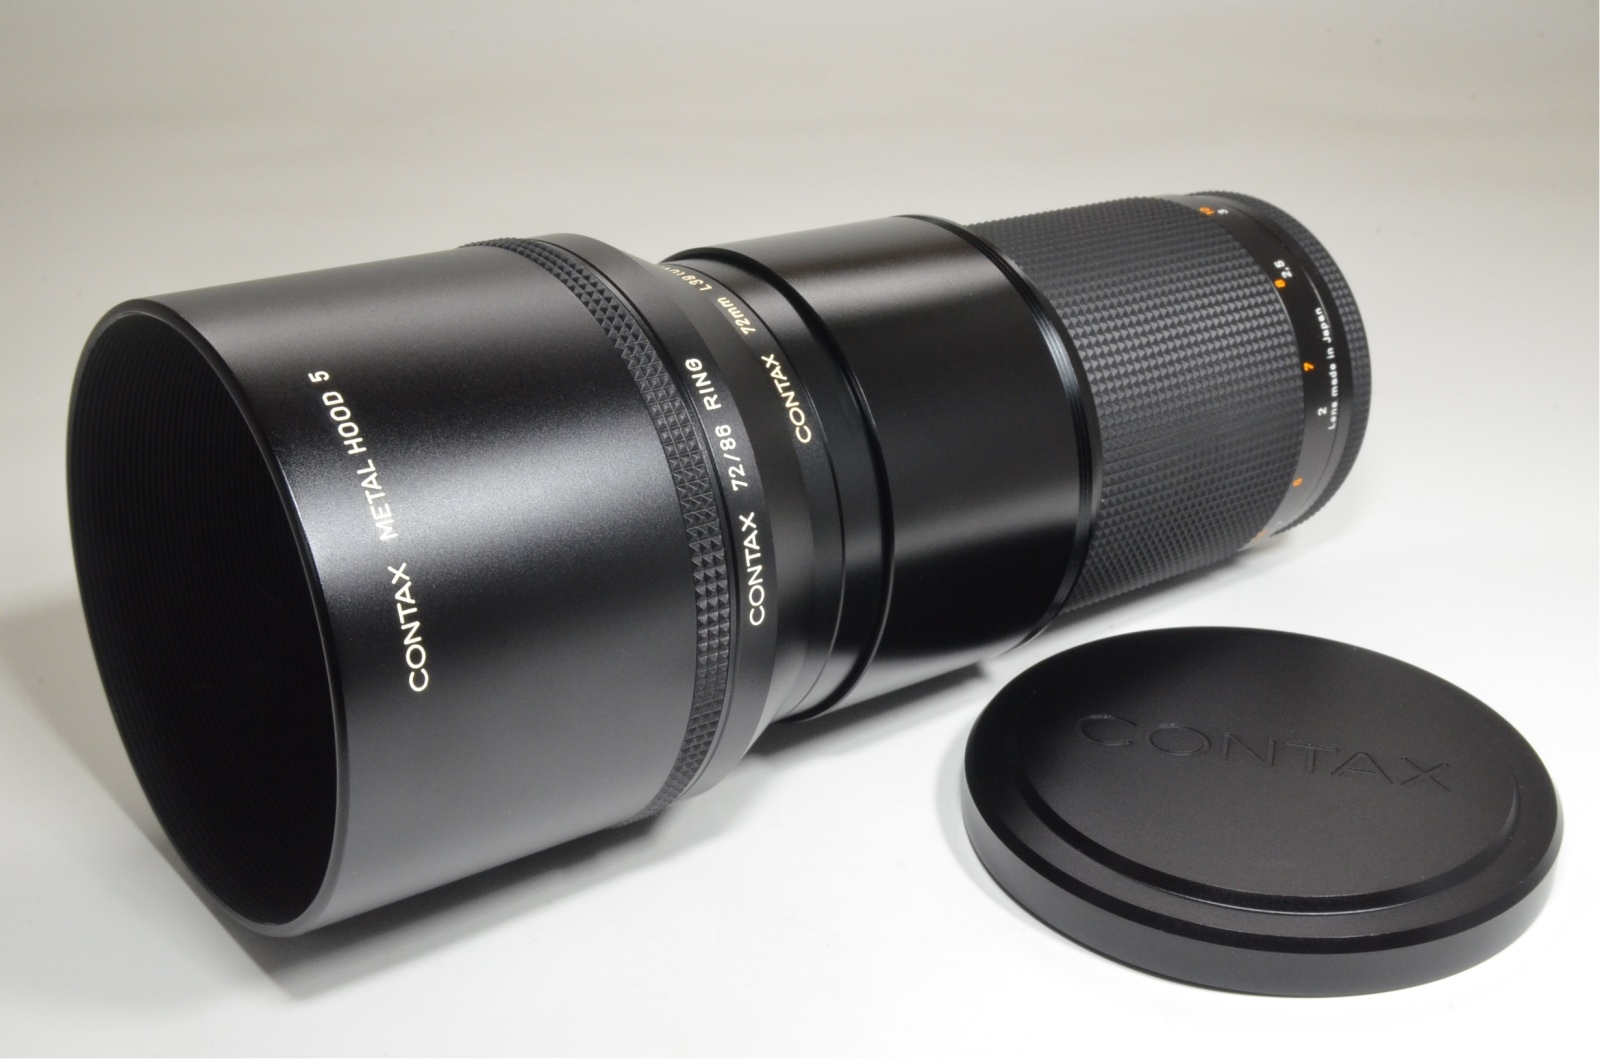 contax carl zeiss sonnar t* 180mm f2.8 mmj japan with metal hood 5